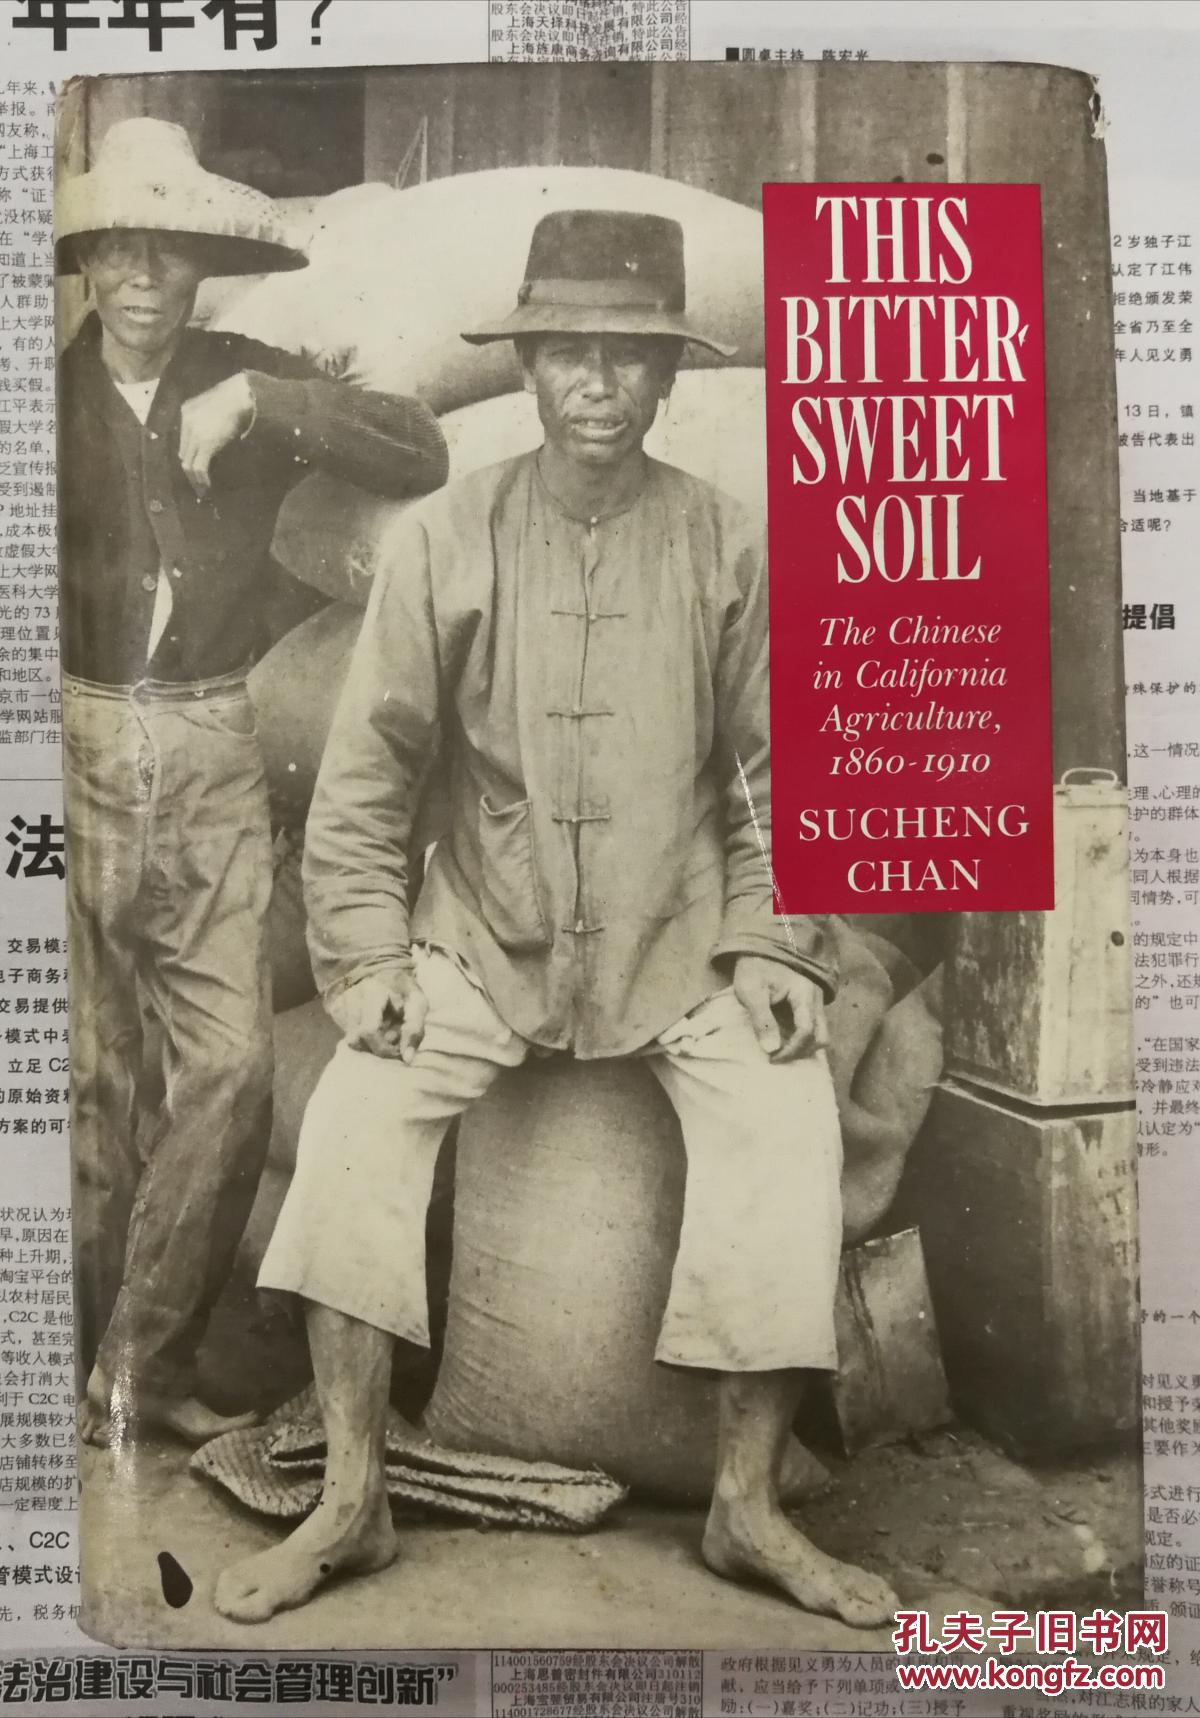 THIS BITTER-SWEET SOIL:The Chinese in California Agriculture,1860-1910